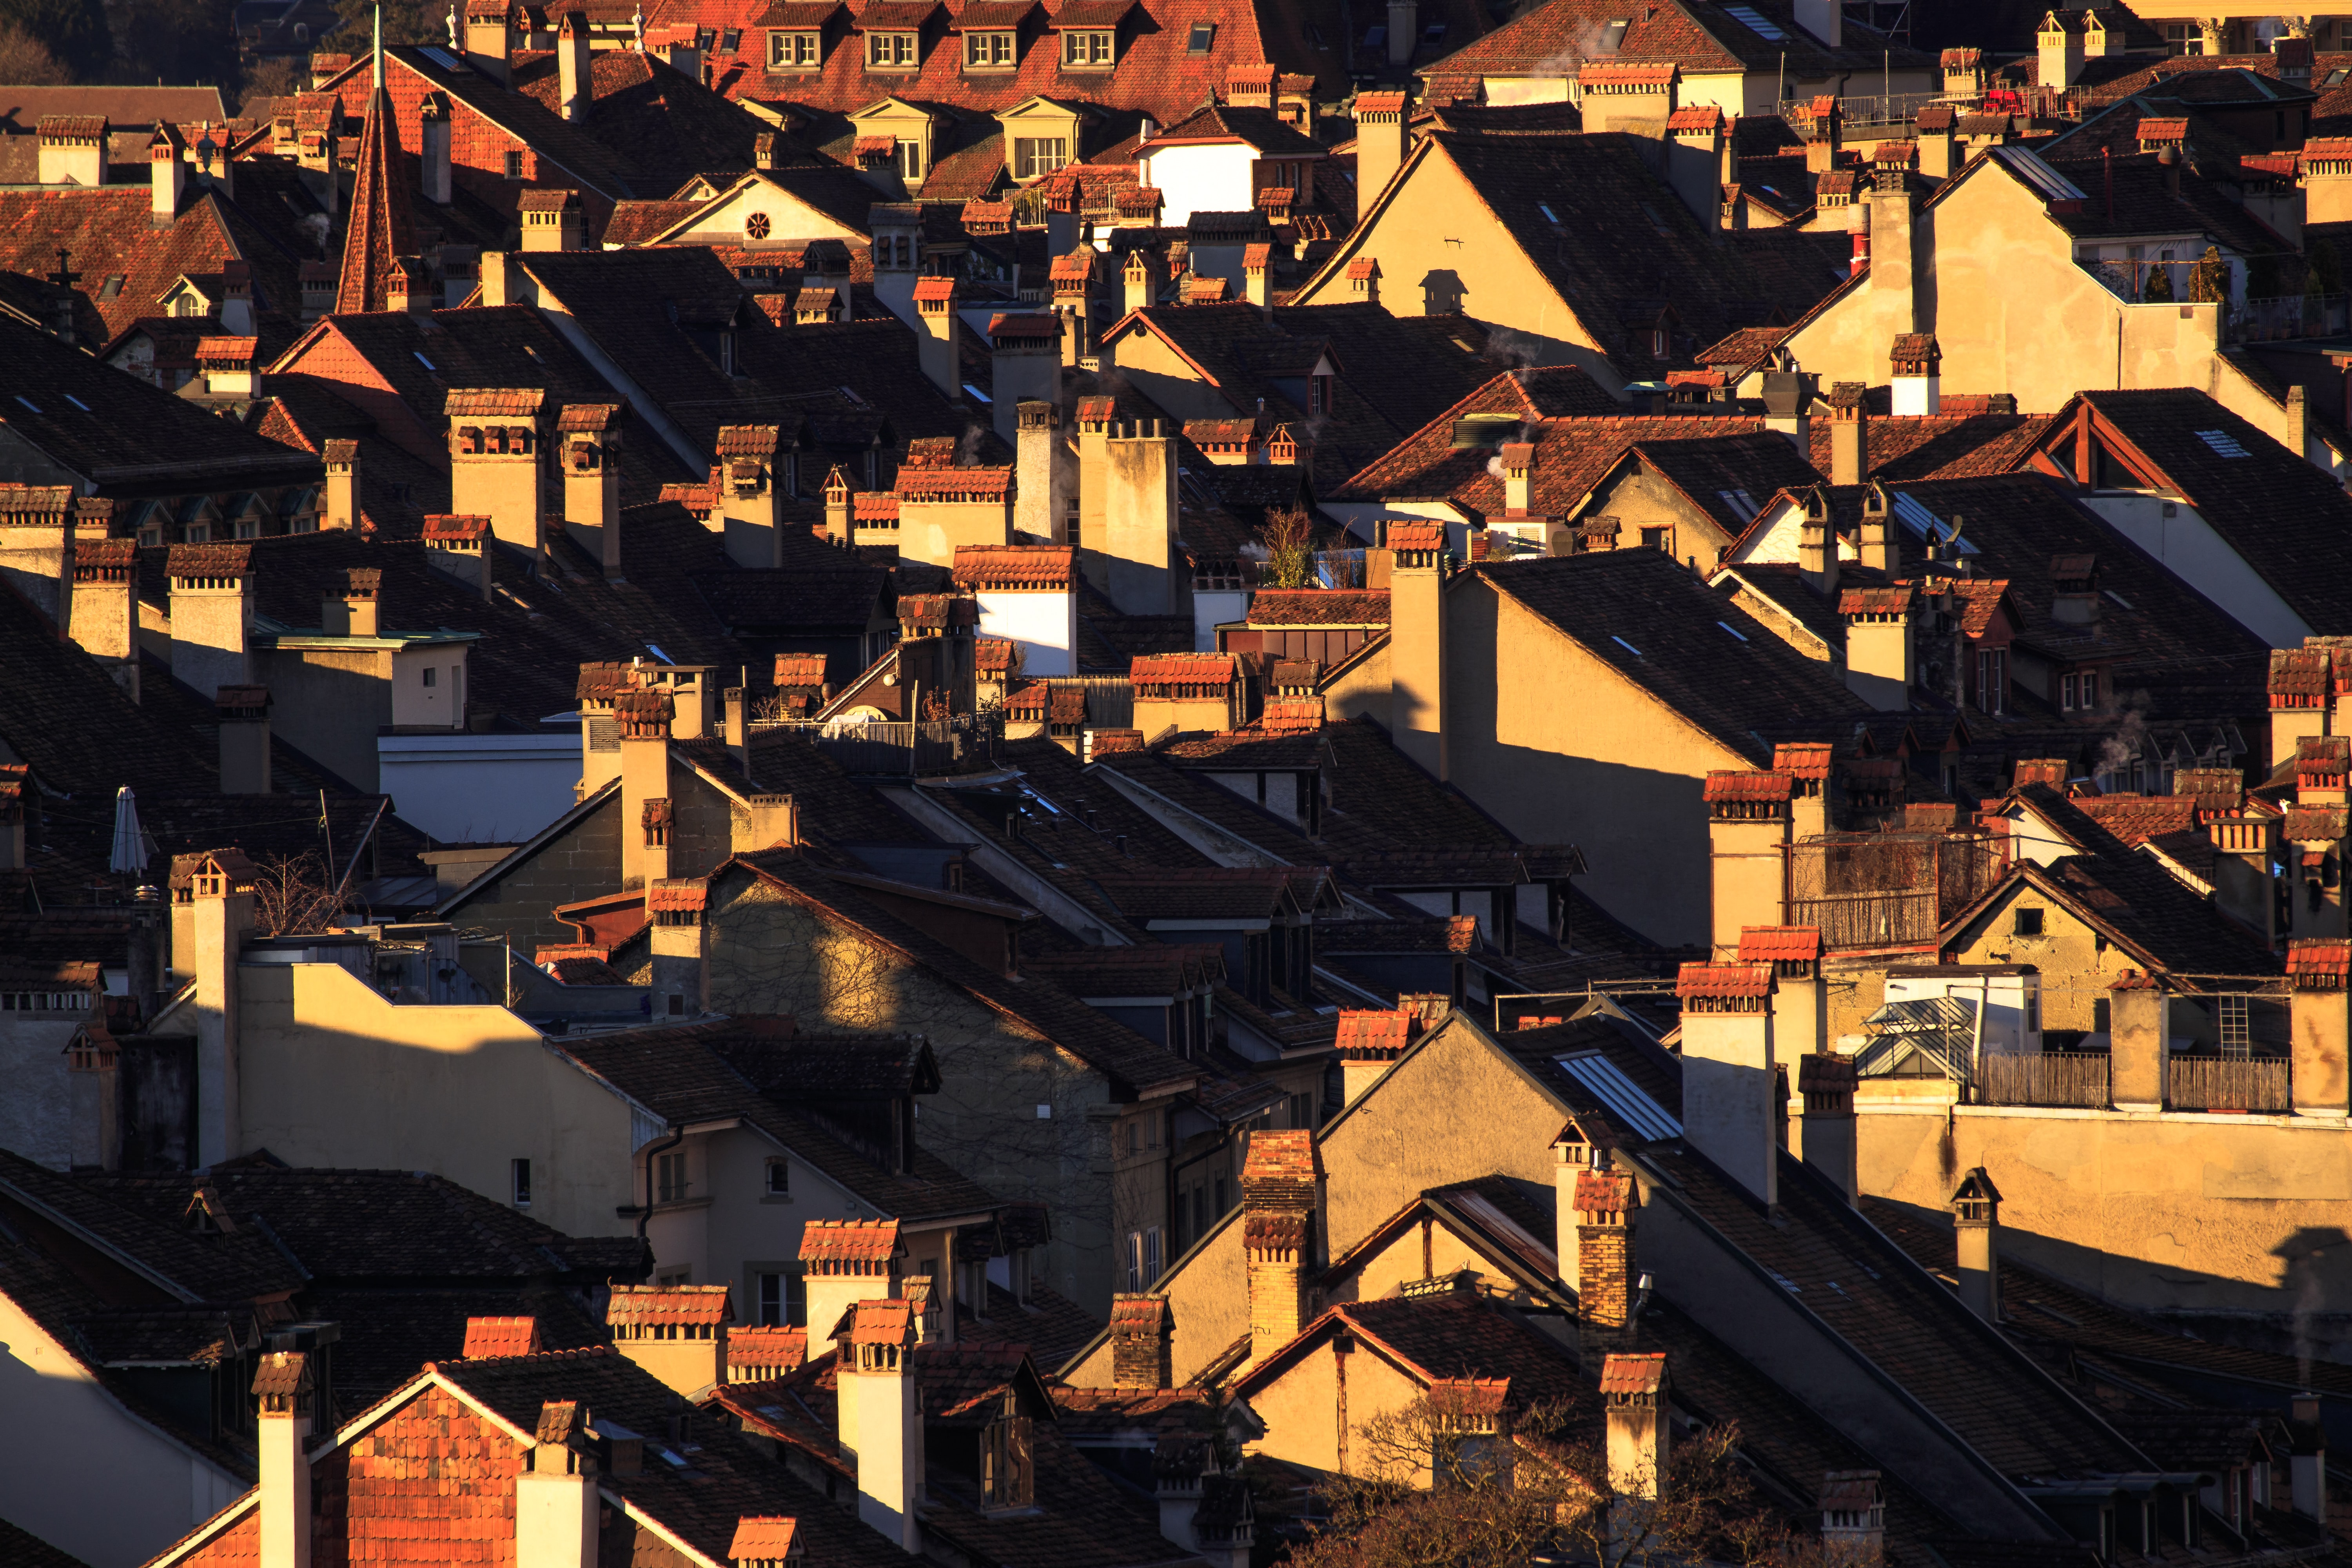 high angle photography of housing during golden hour